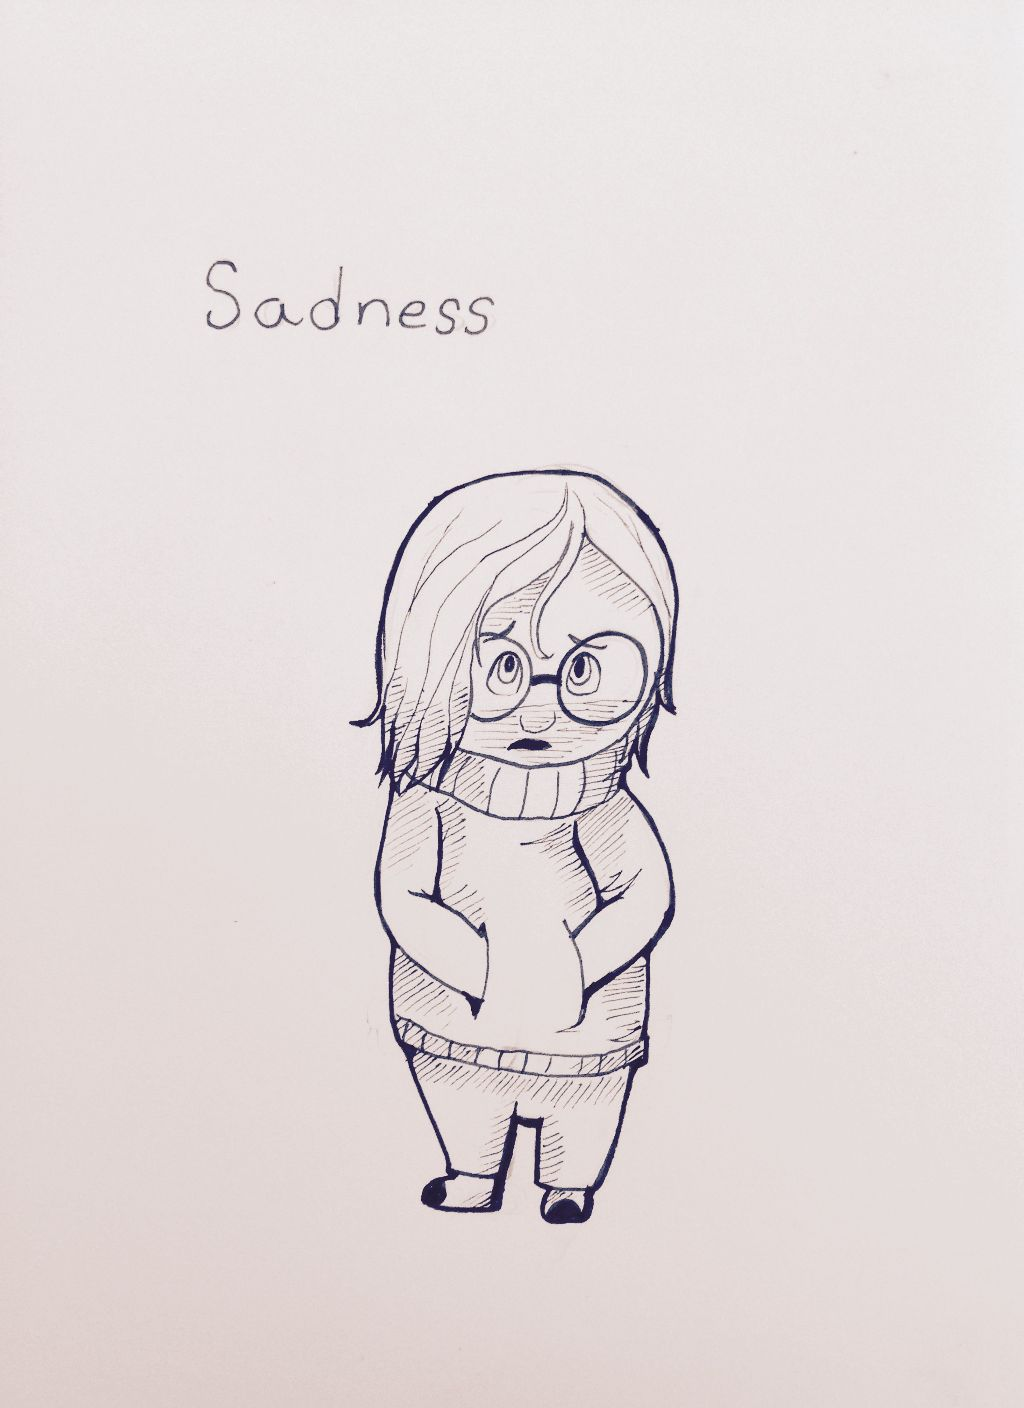 Sadness sketch from disney pixars newest movie inside out if you havent